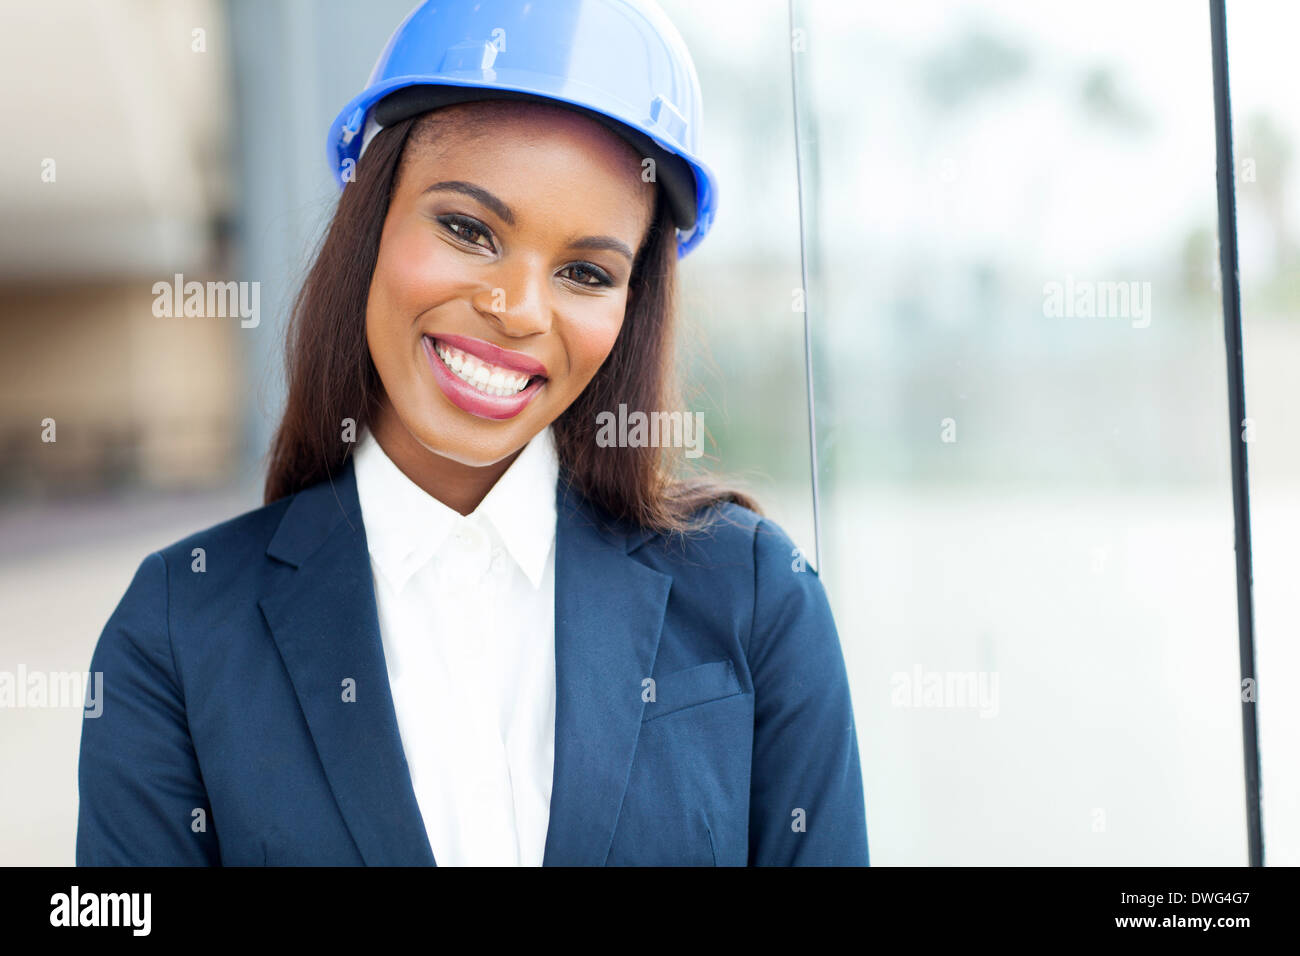 Construction worker women in interracial action